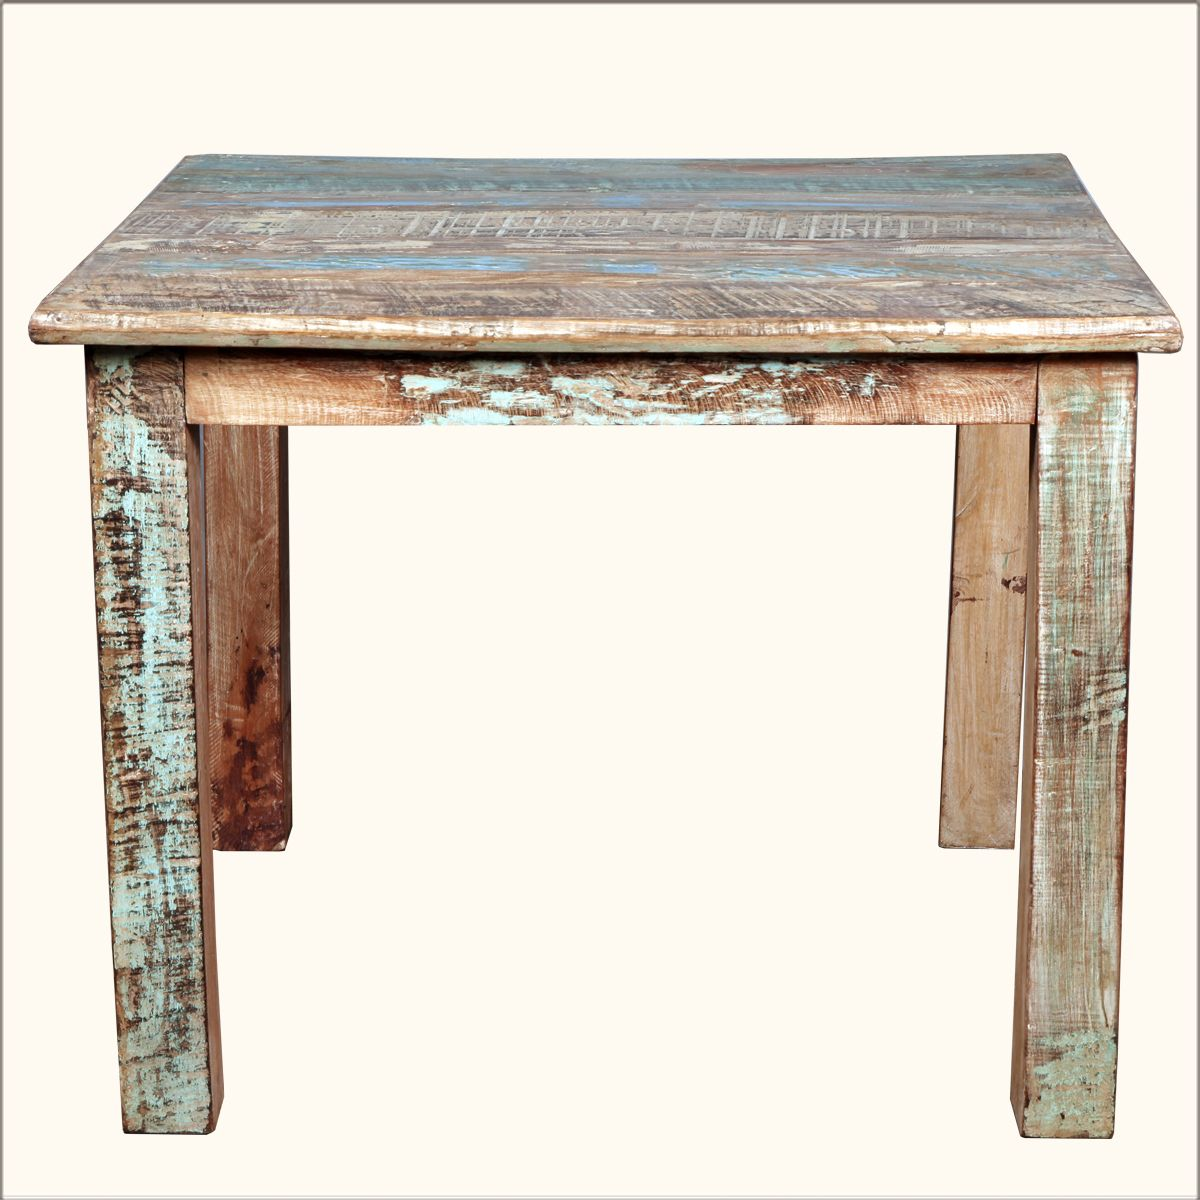 Genial Our Classic Rustic Small Kitchen Table Feels Authentic Because It Is Built  With Reclaimed Hardwood. Description From Ebay.com.